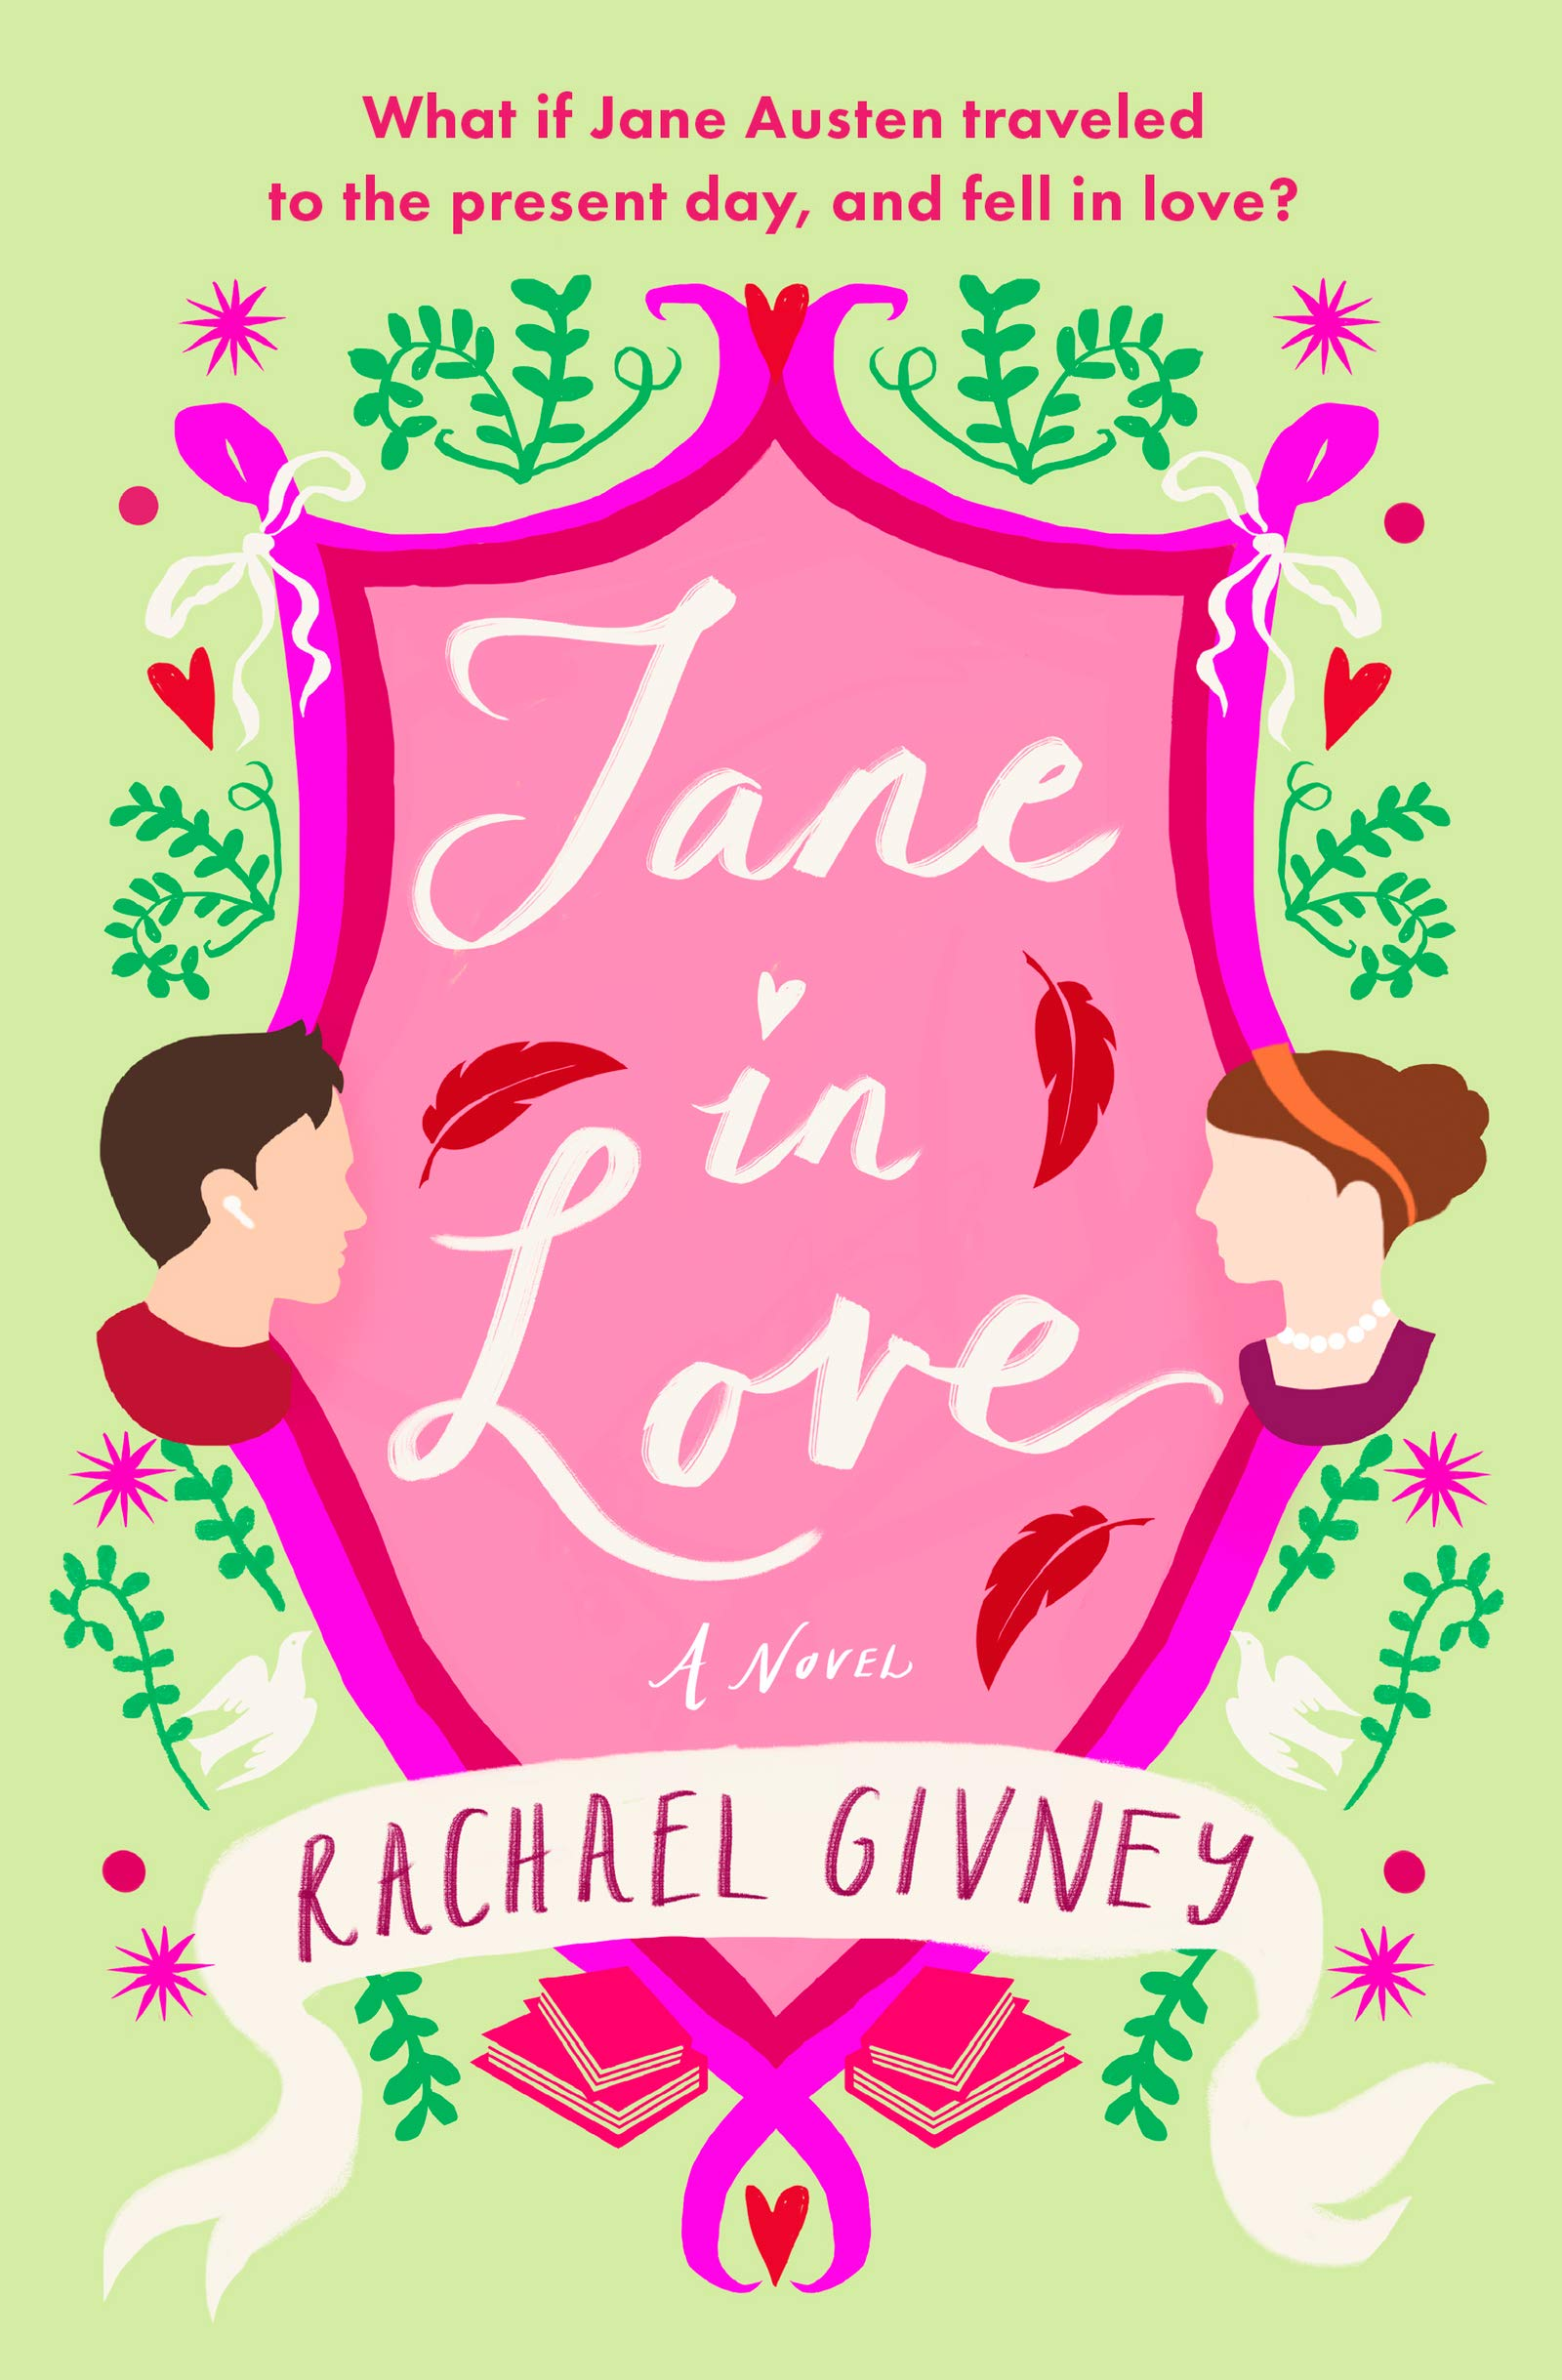 ane in Love by Rachel Givney 2020